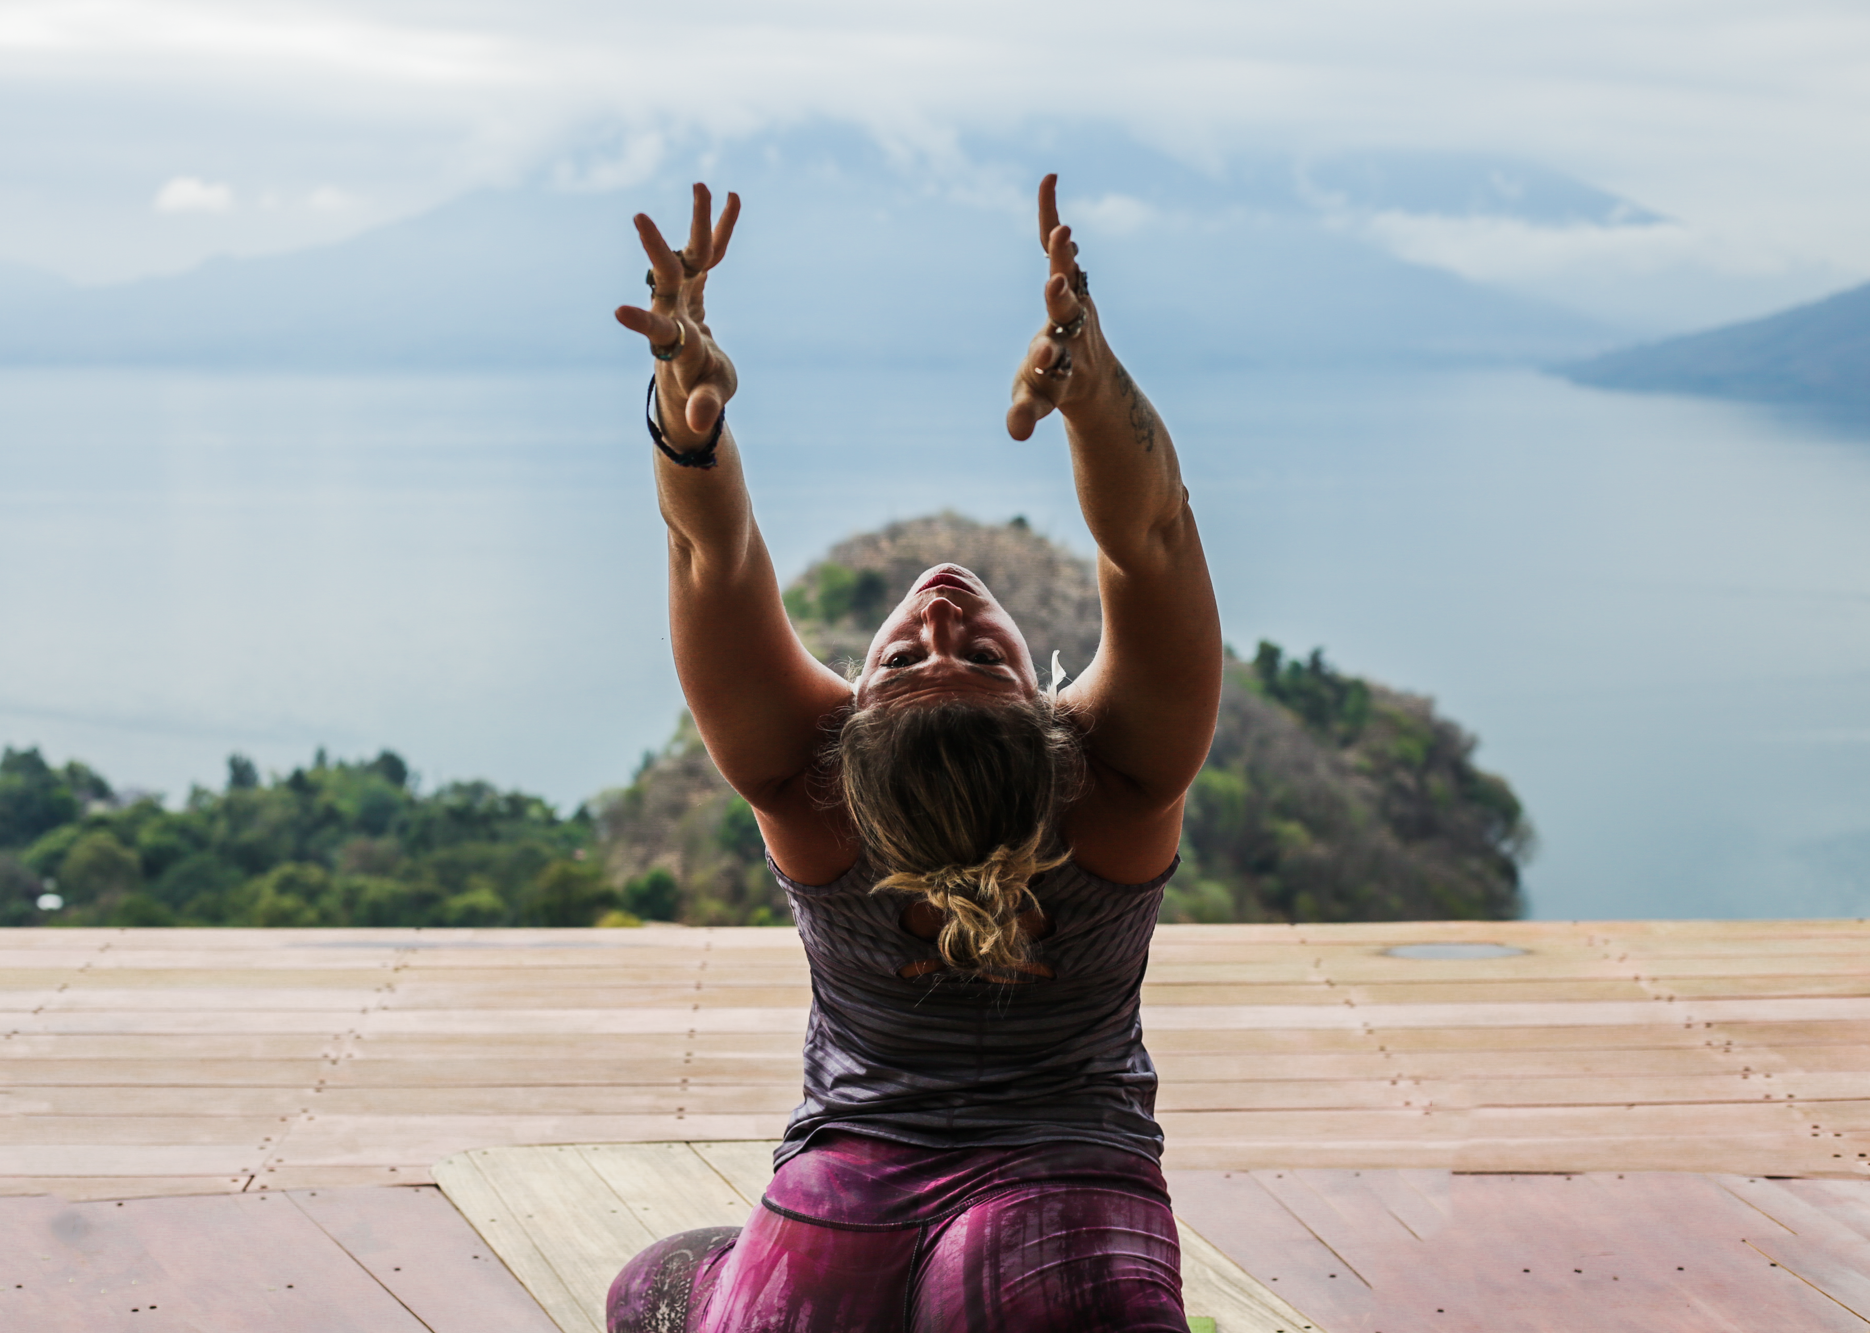 A girl does stretches during a yoga class at Eagle's Nest in San Marcos La Laguna, Guatemala.